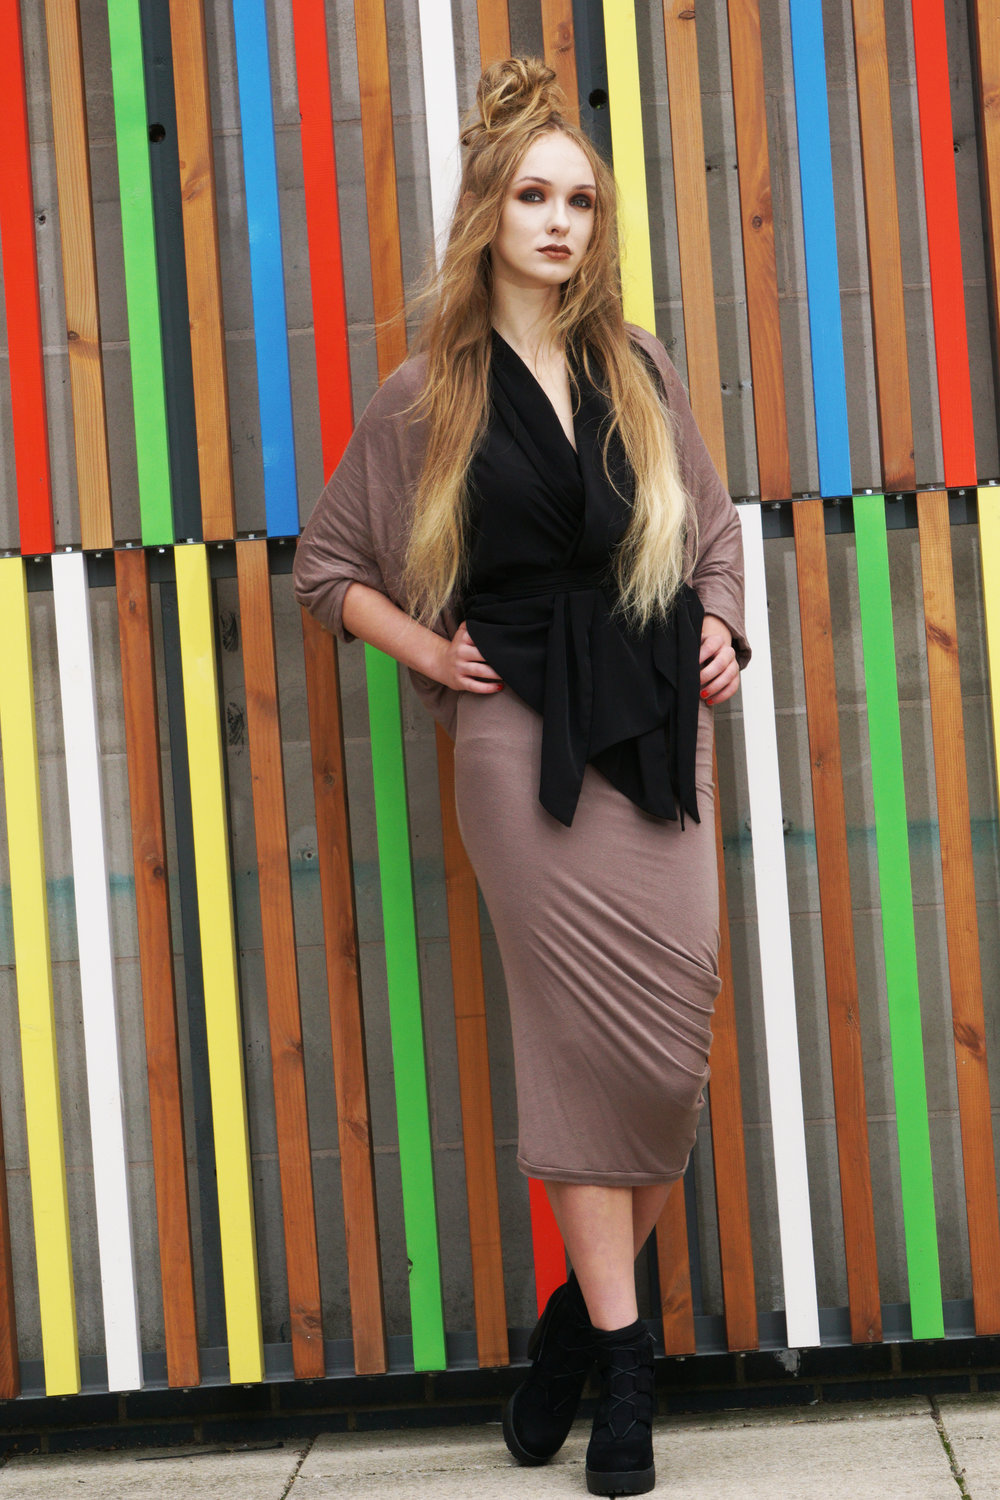 zaramia-ava-zaramiaava-leeds-fashion-designer-ethical-sustainable-taupe-versatile-drape-mika-crop-top-yoko-skirt-mioka-black-leeds-dock-grunge-8